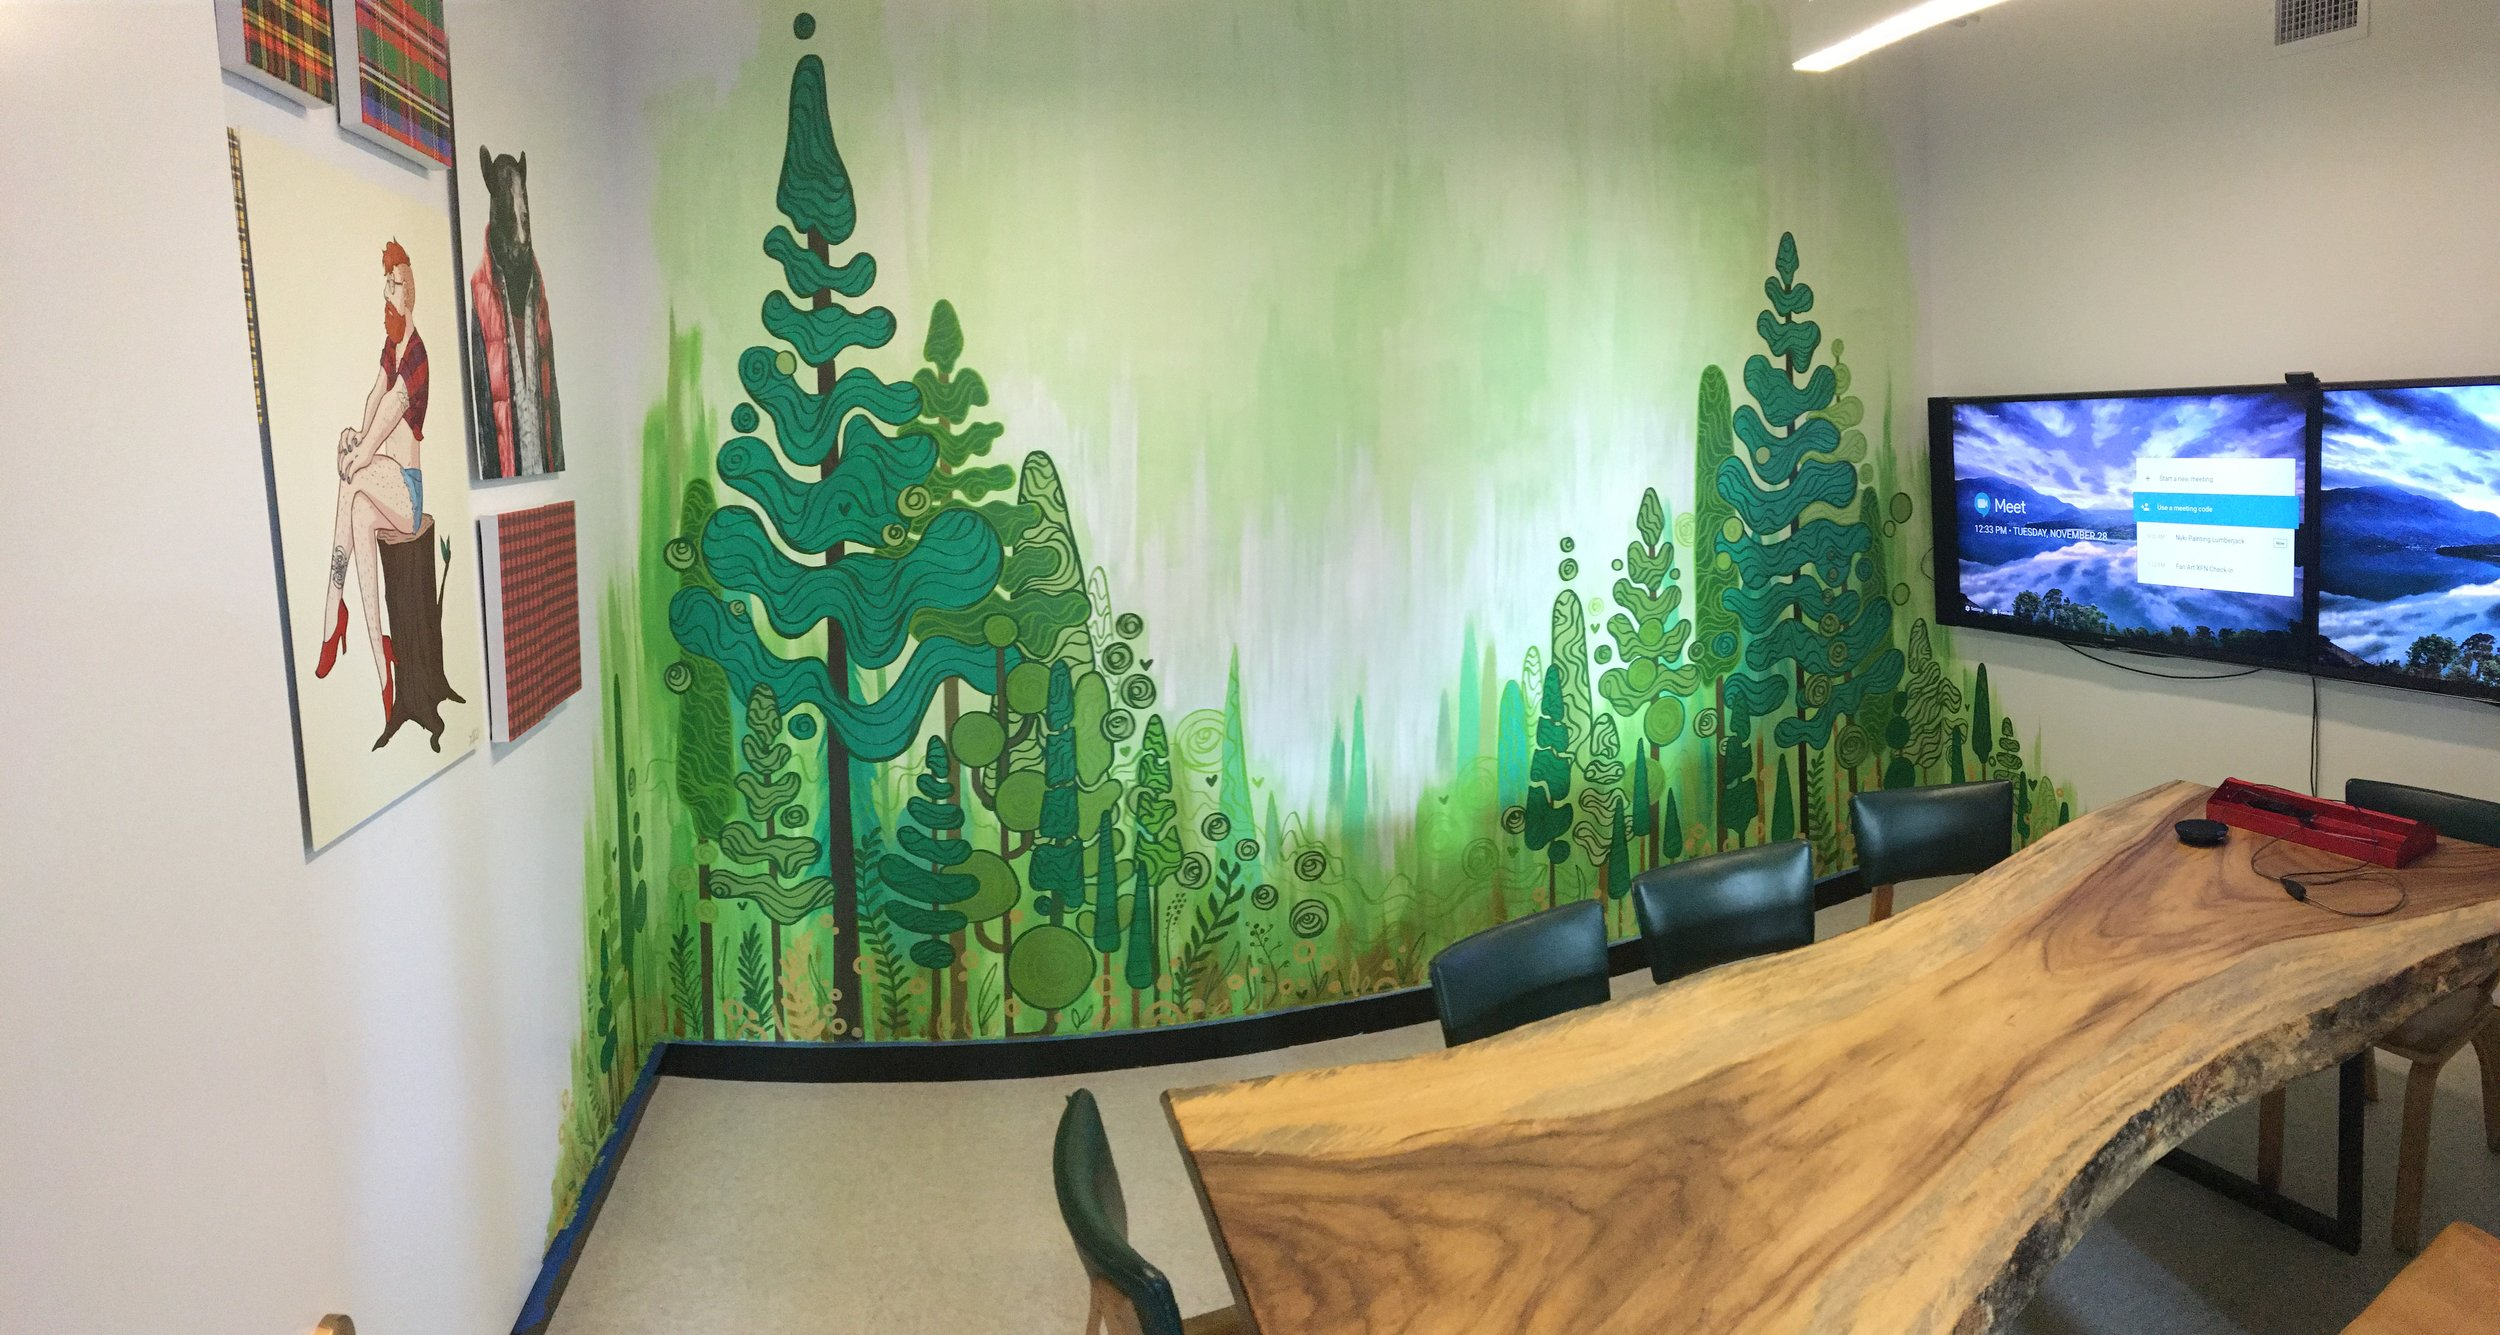 Work in Progress Panorama of Entire Lumberjack Room at Redbubble in San Francisco, CA. 2017.